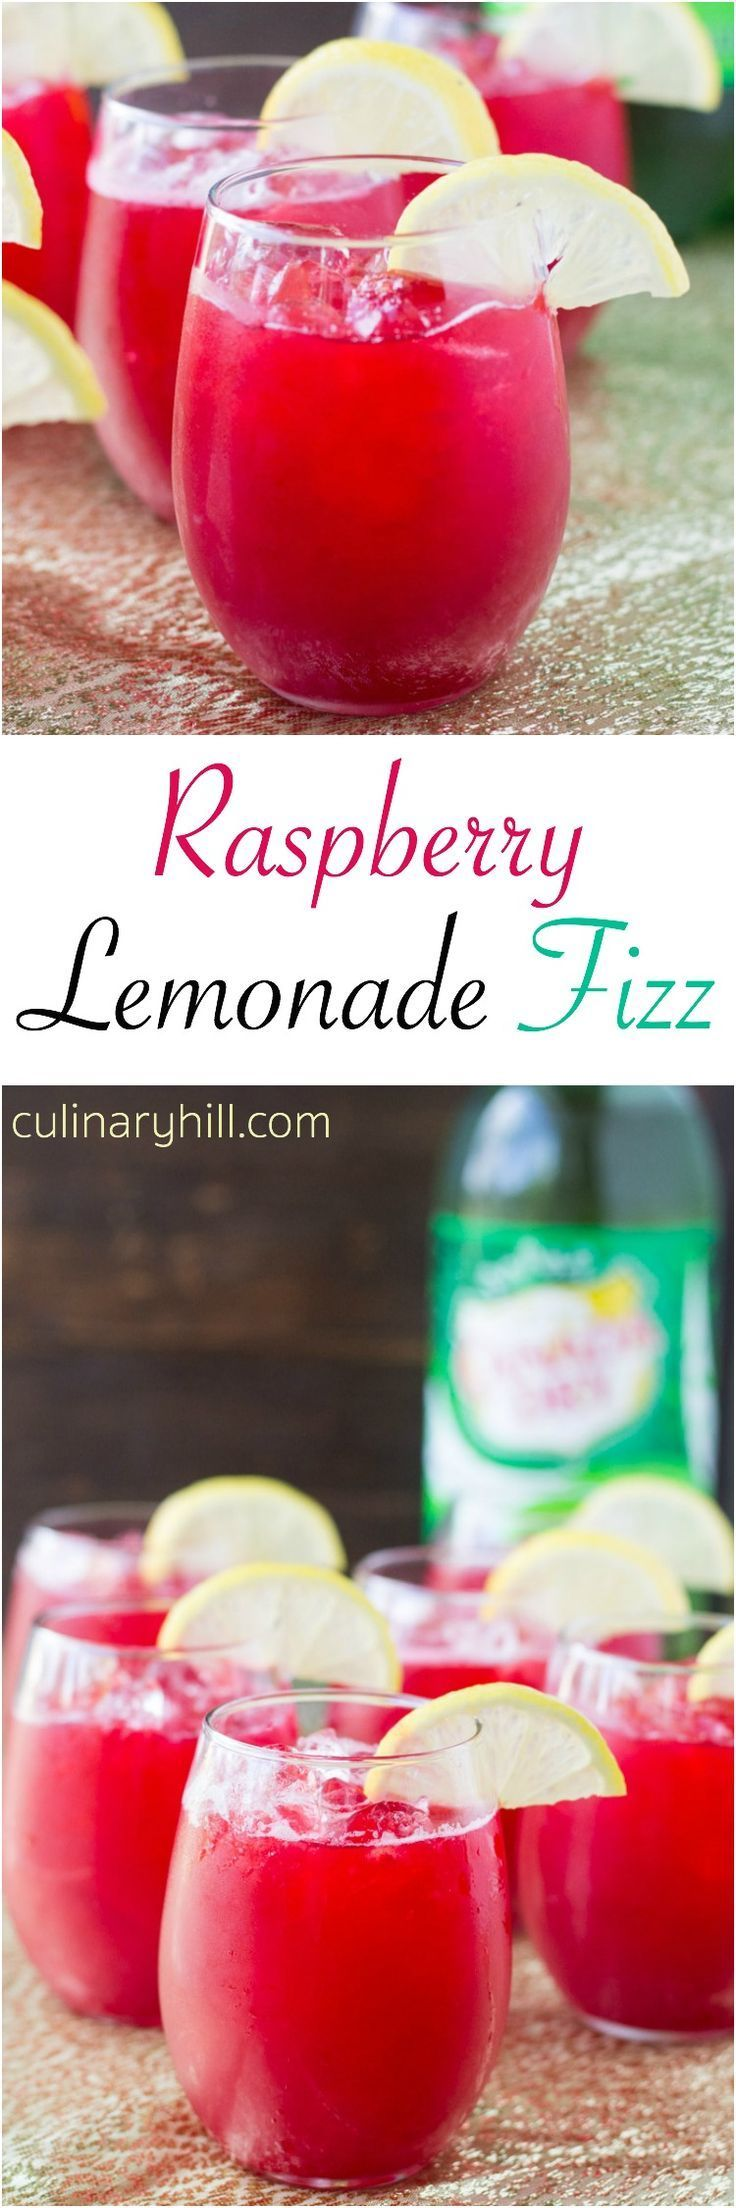 Make Raspberry Lemonade Fizz the signature drink at your next party! It only takes 3 ingredients and everything can be made ahead.